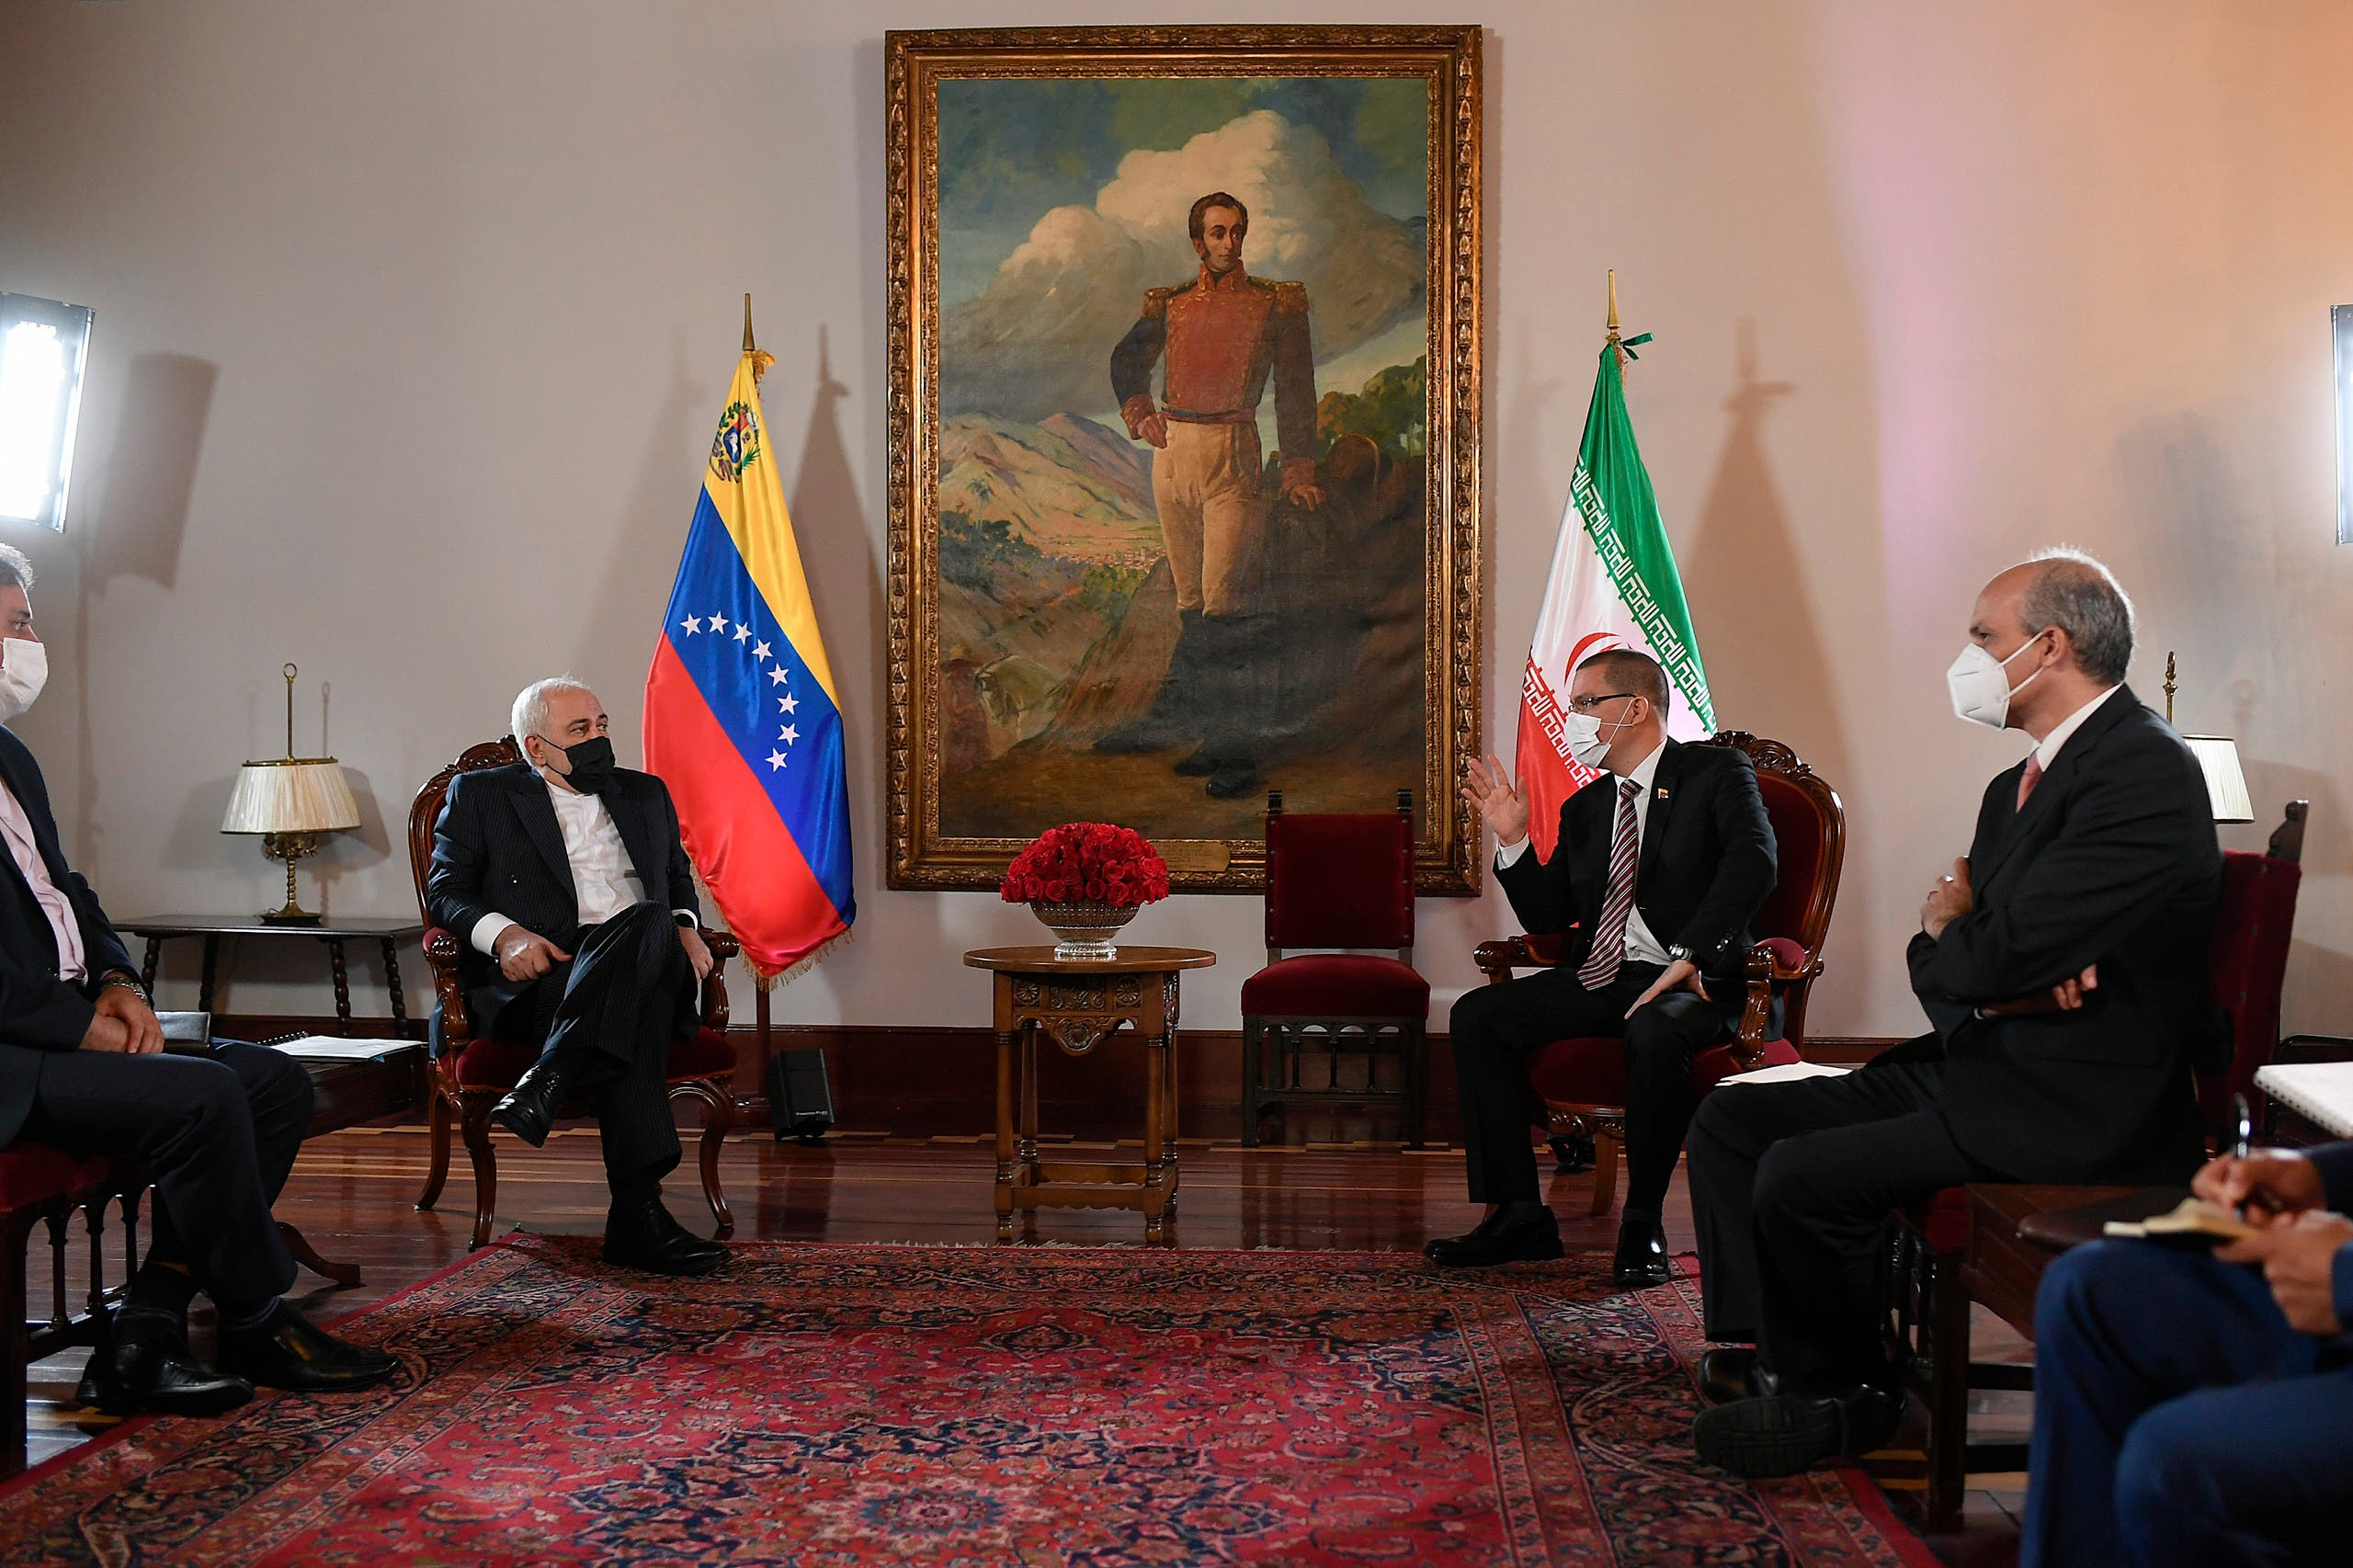 Iran's Foreign Minister Mohammad Javad Zarif, left, sits with Venezuela's Foreign Minister Jorge Arreaza, second from right, during a photo opportunity at the Foreign Ministry where a painting of Venezuela's independence hero Simon Bolivar hangs in Caracas, Venezuela, Thursday, Nov. 5, 2020, amid the COVID-19 pandemic. (AP Photo/Matias Delacroix)